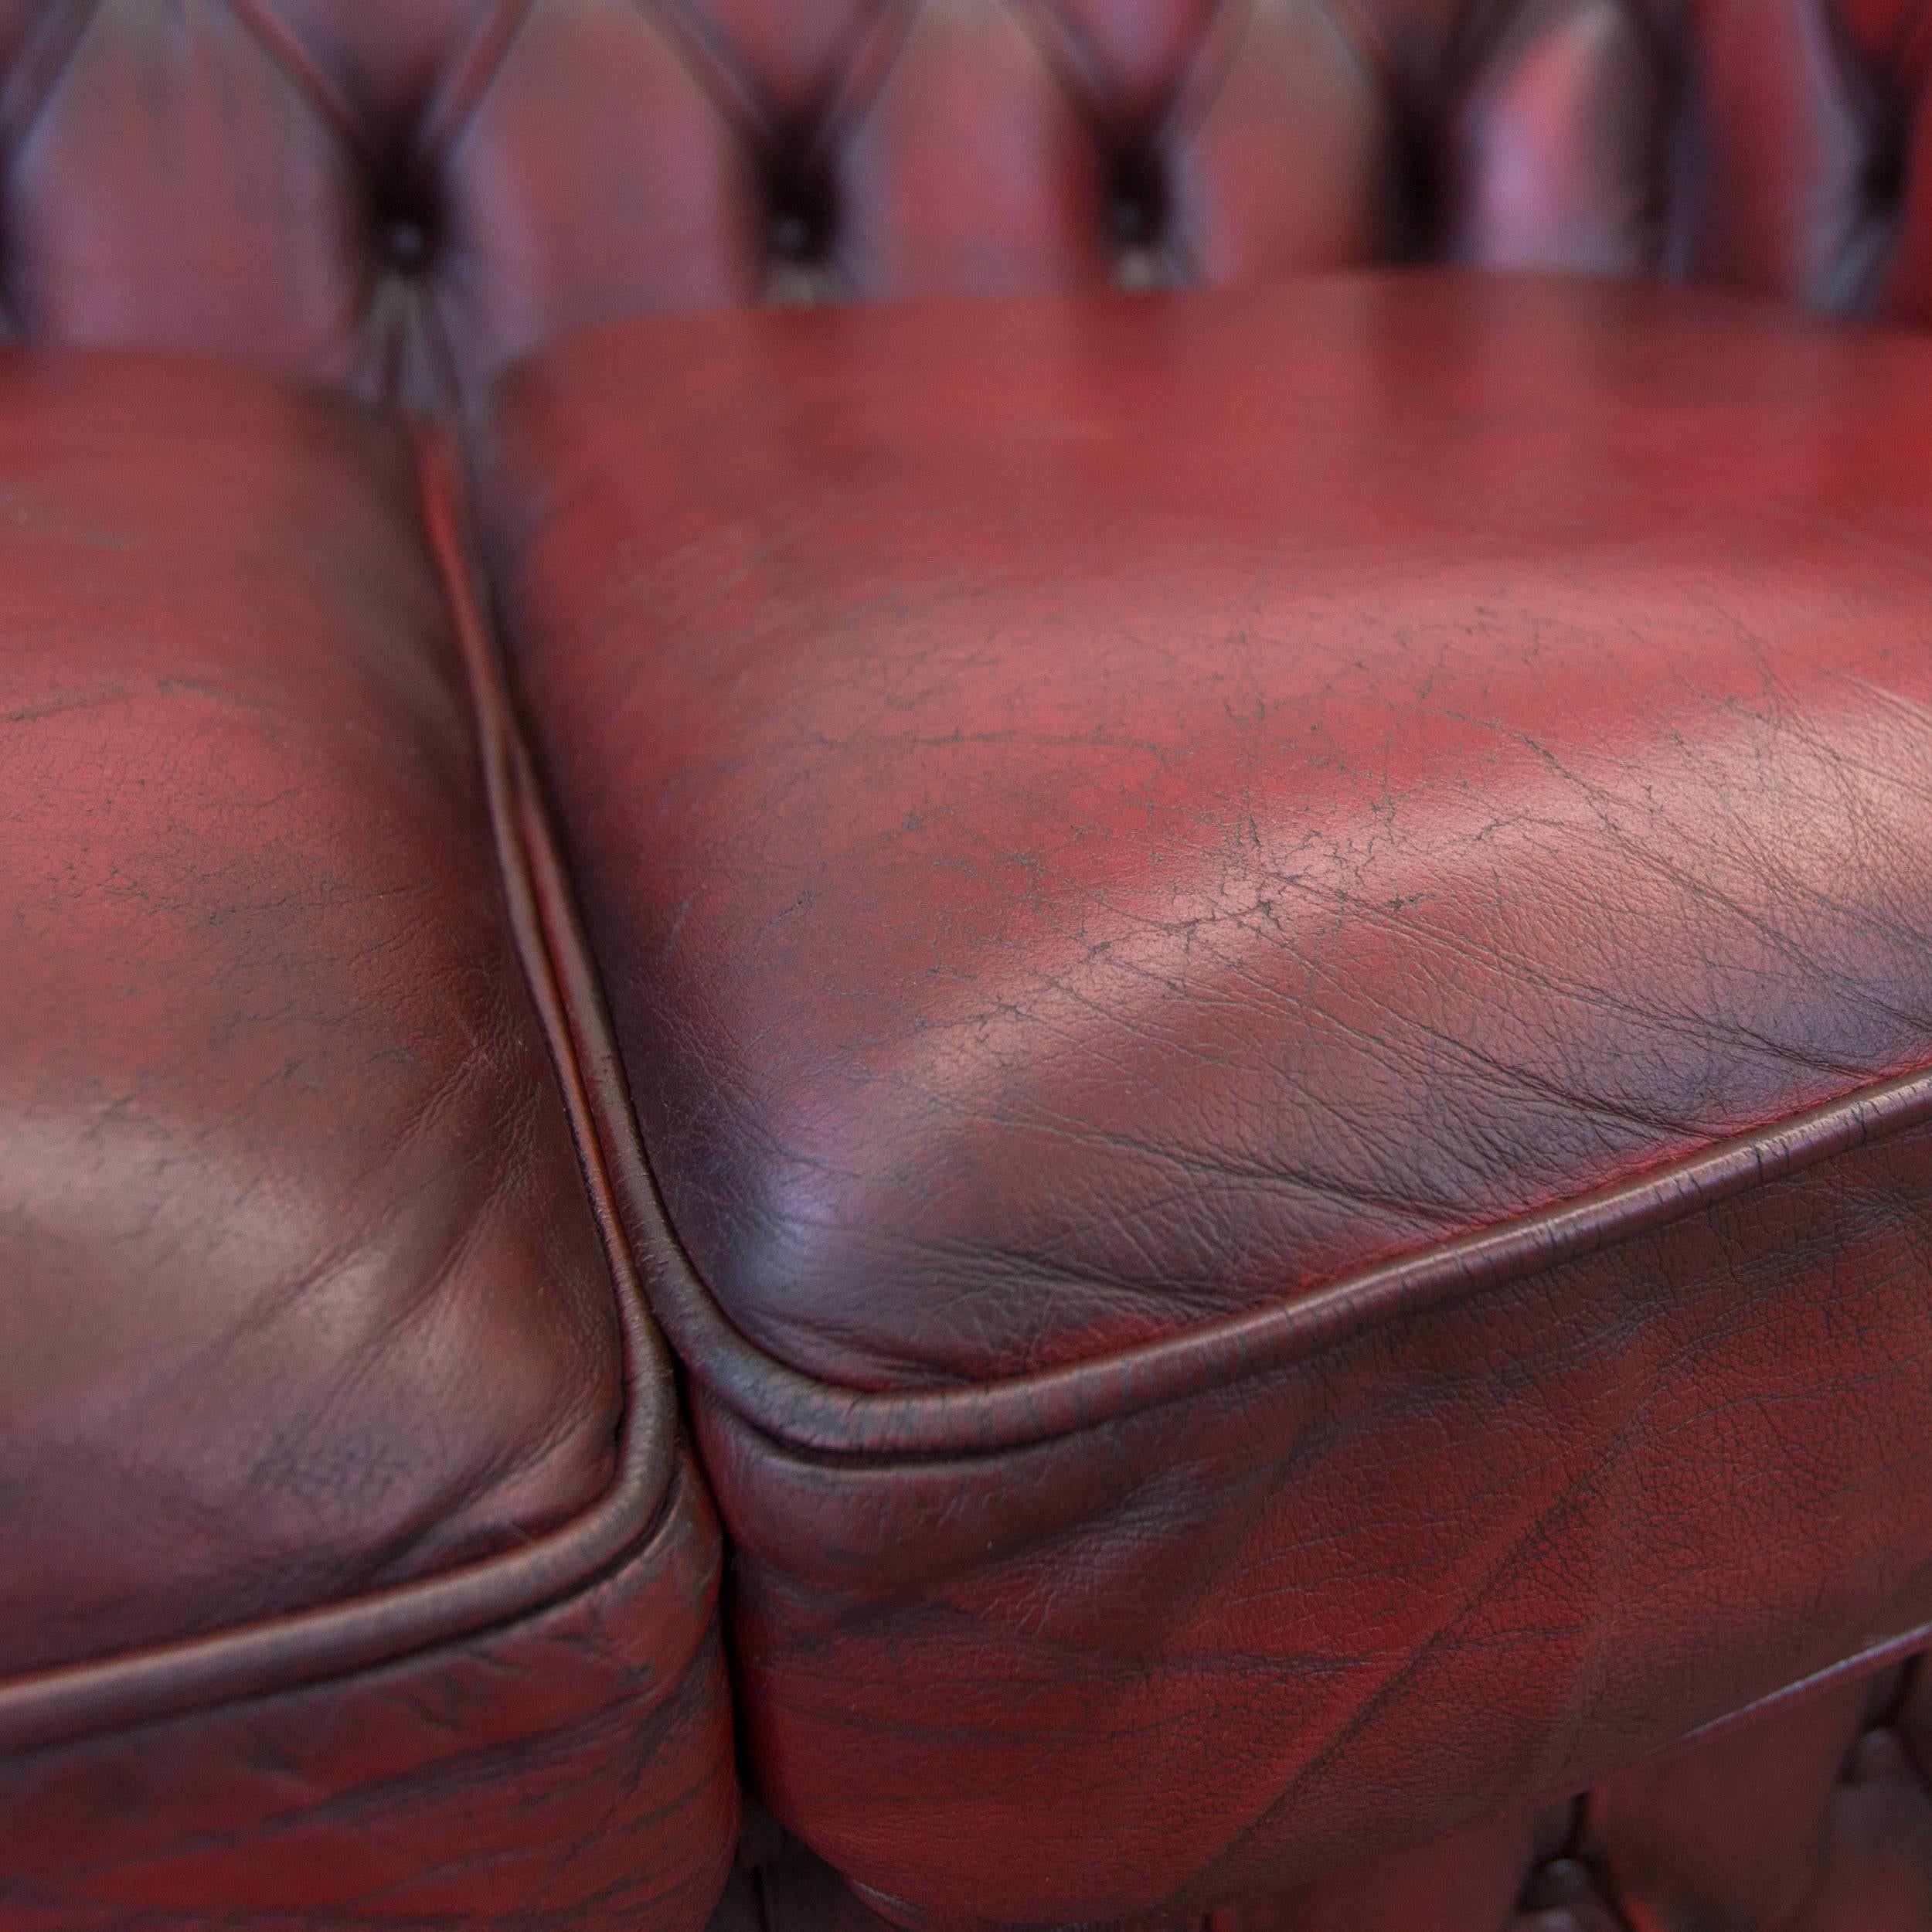 20th Century Chesterfield Leather Sofa Oxblood Red Two Seat Couch Vintage  Retro For Sale